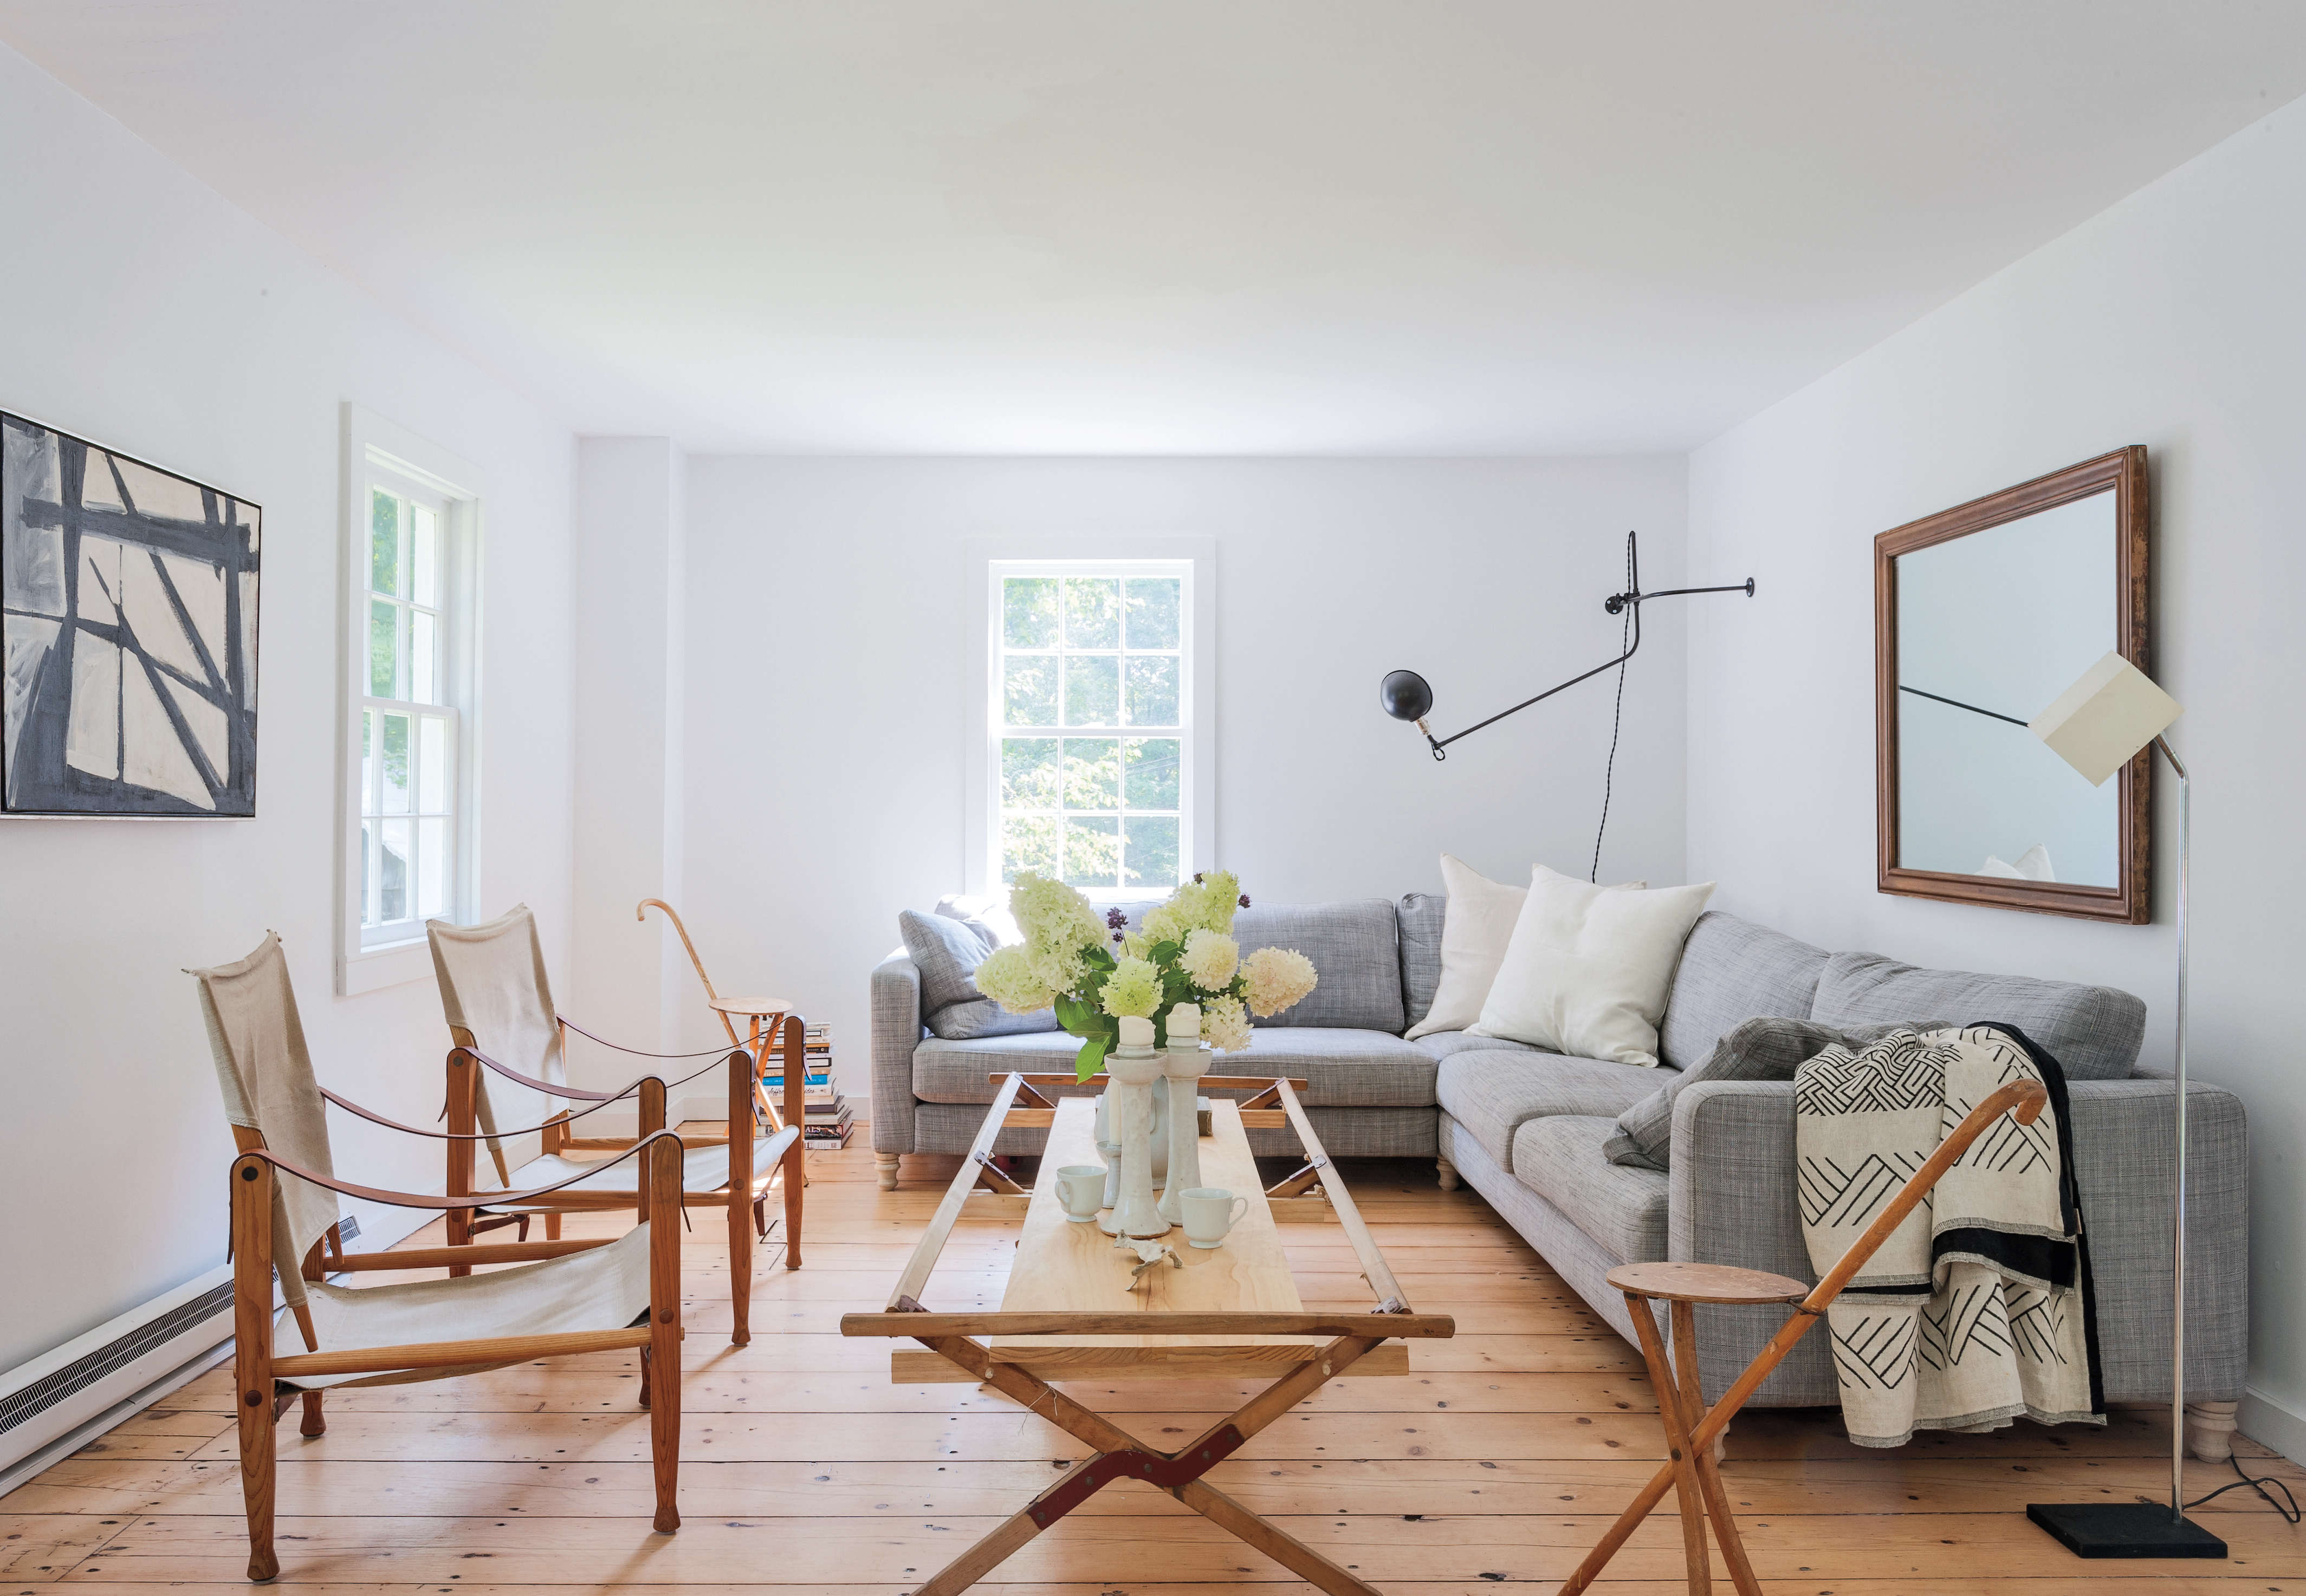 Living Room Paint Ideas To Make It Look Bigger expert advice: 11 tips for making a room look bigger - remodelista